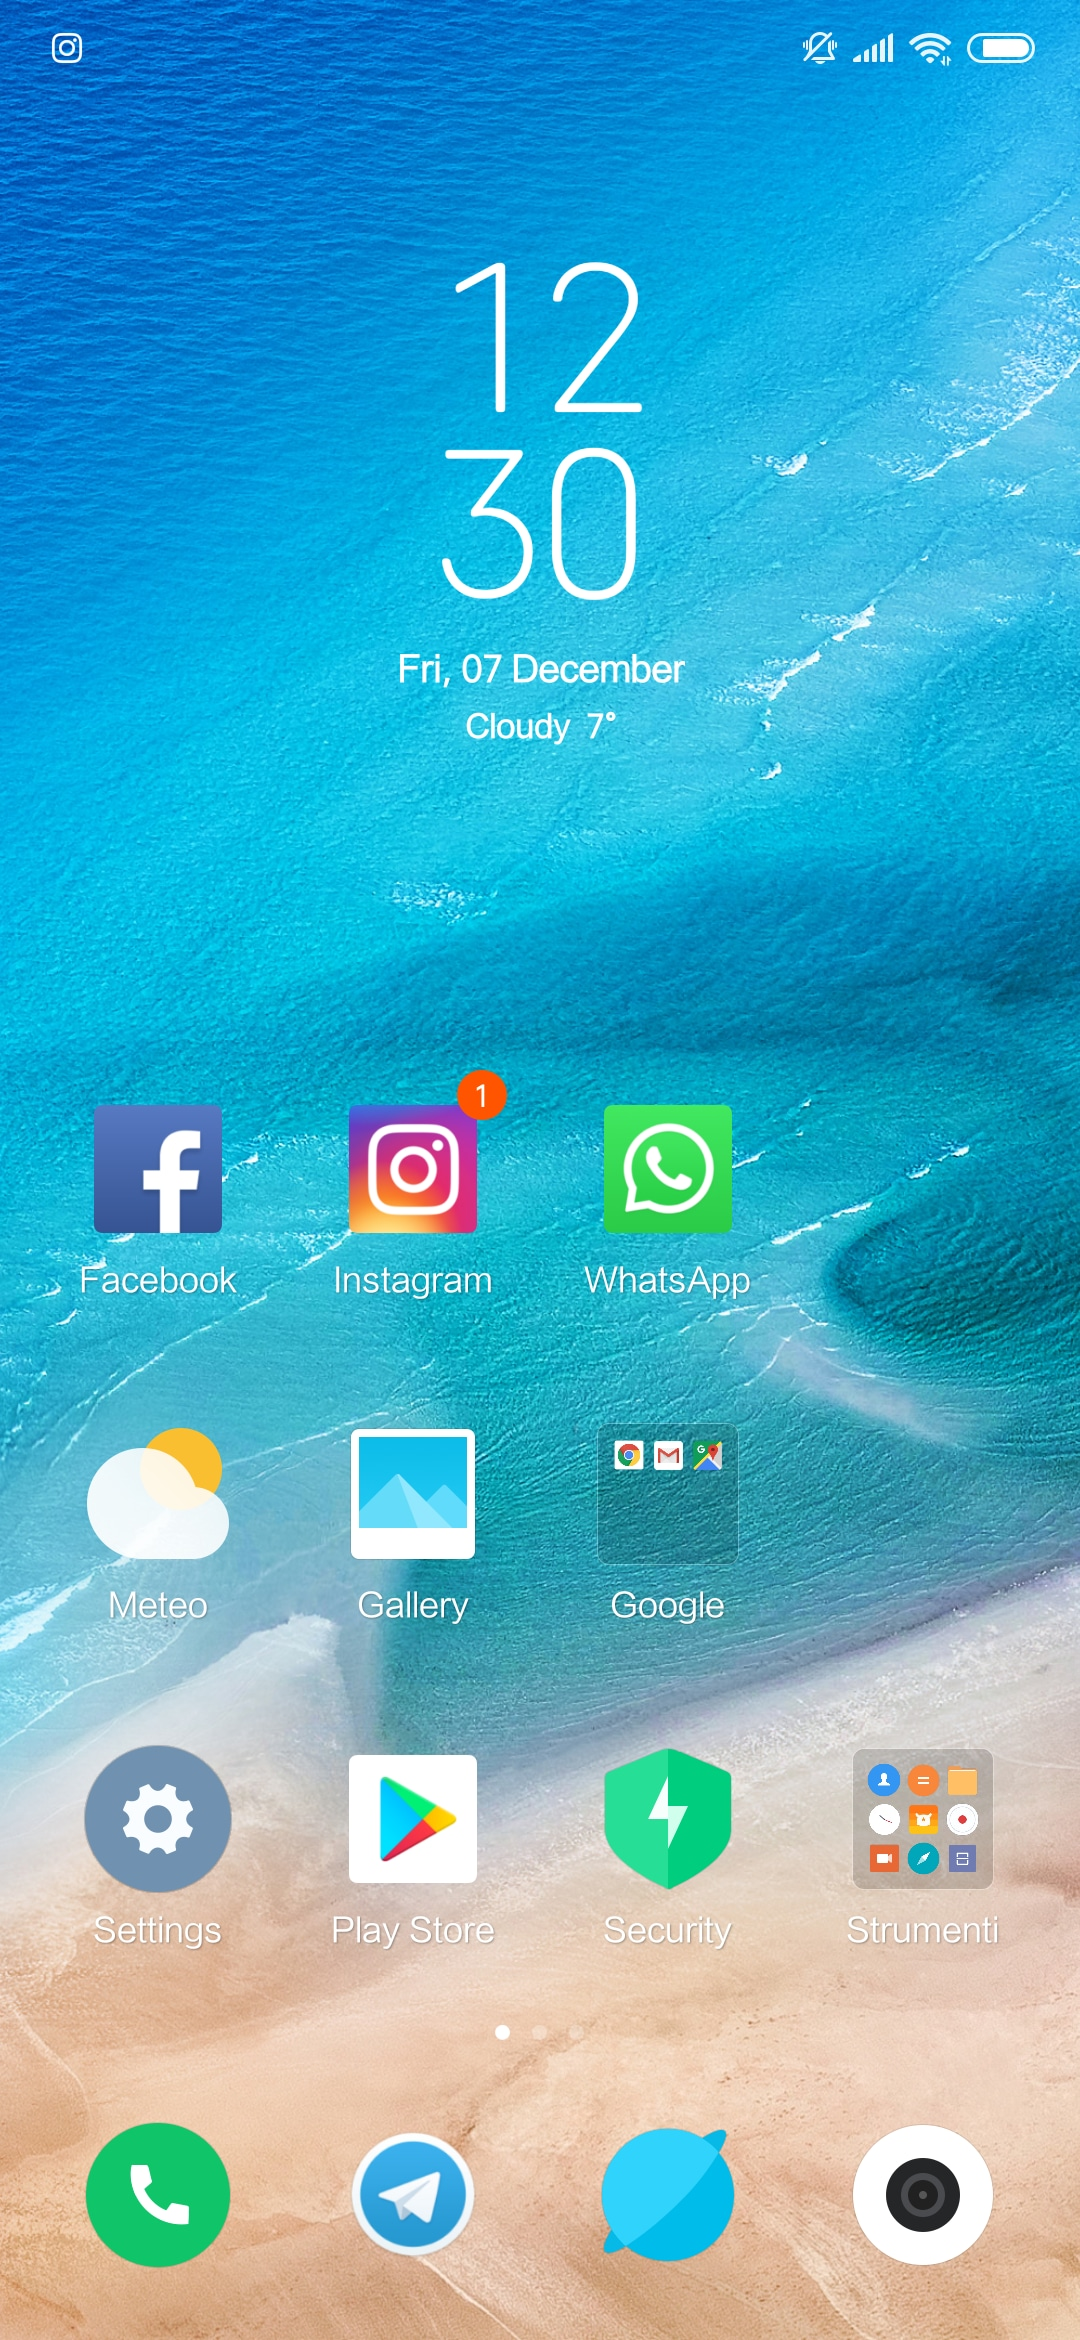 Screenshot_2018-12-07-12-30-58-166_com.miui.home